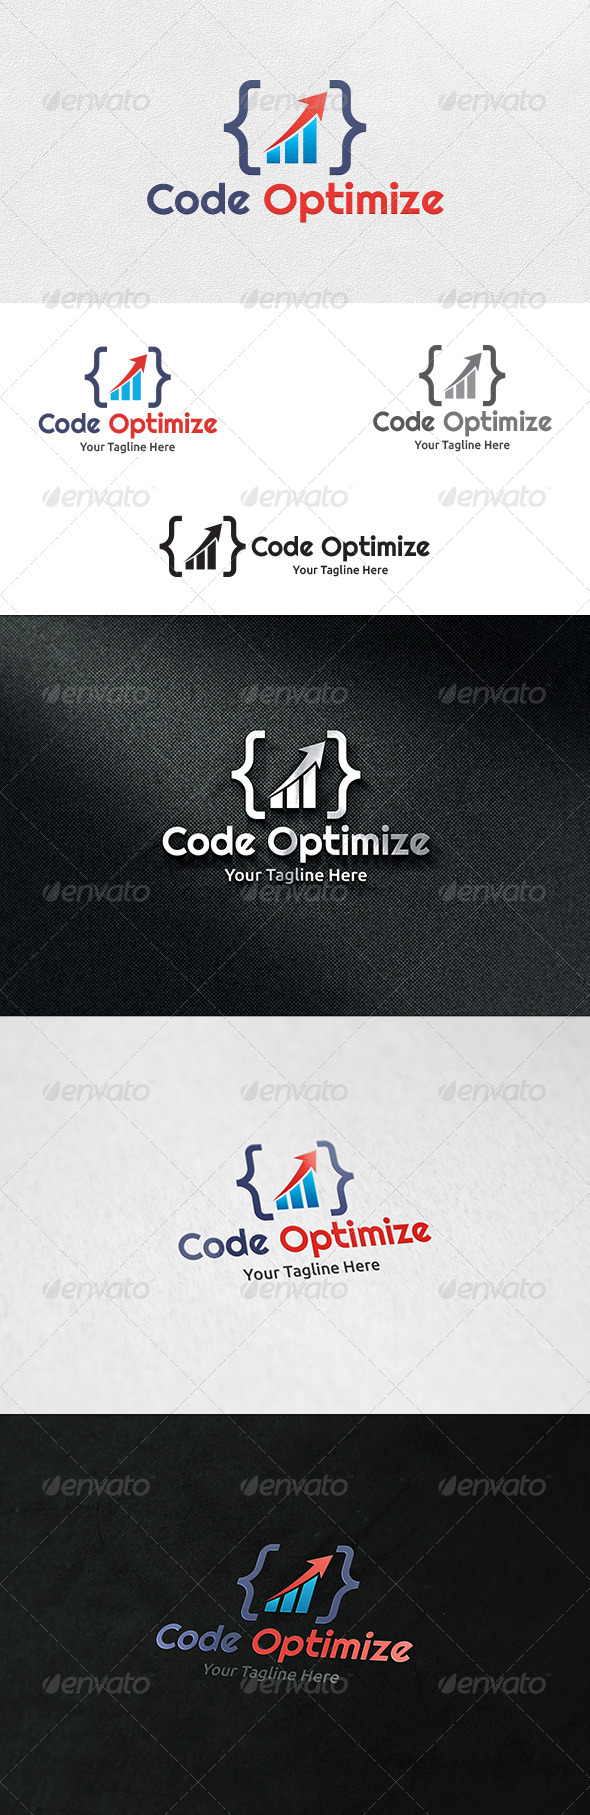 Code Optimize Logo Template